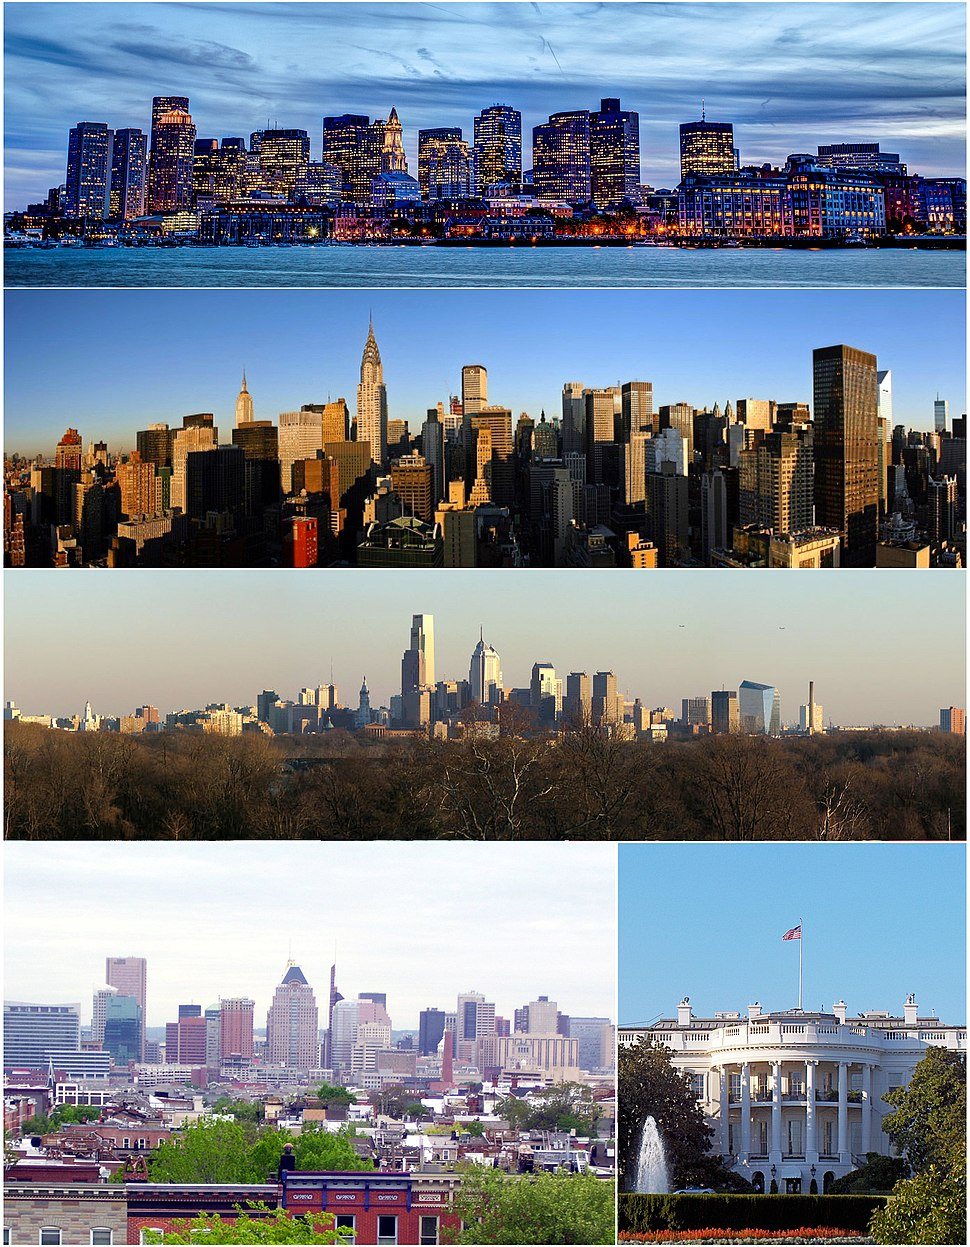 Major cities of the Northeast megalopolis counterclockwise from top: Boston, New York, Philadelphia, Baltimore, and Washington, D.C.